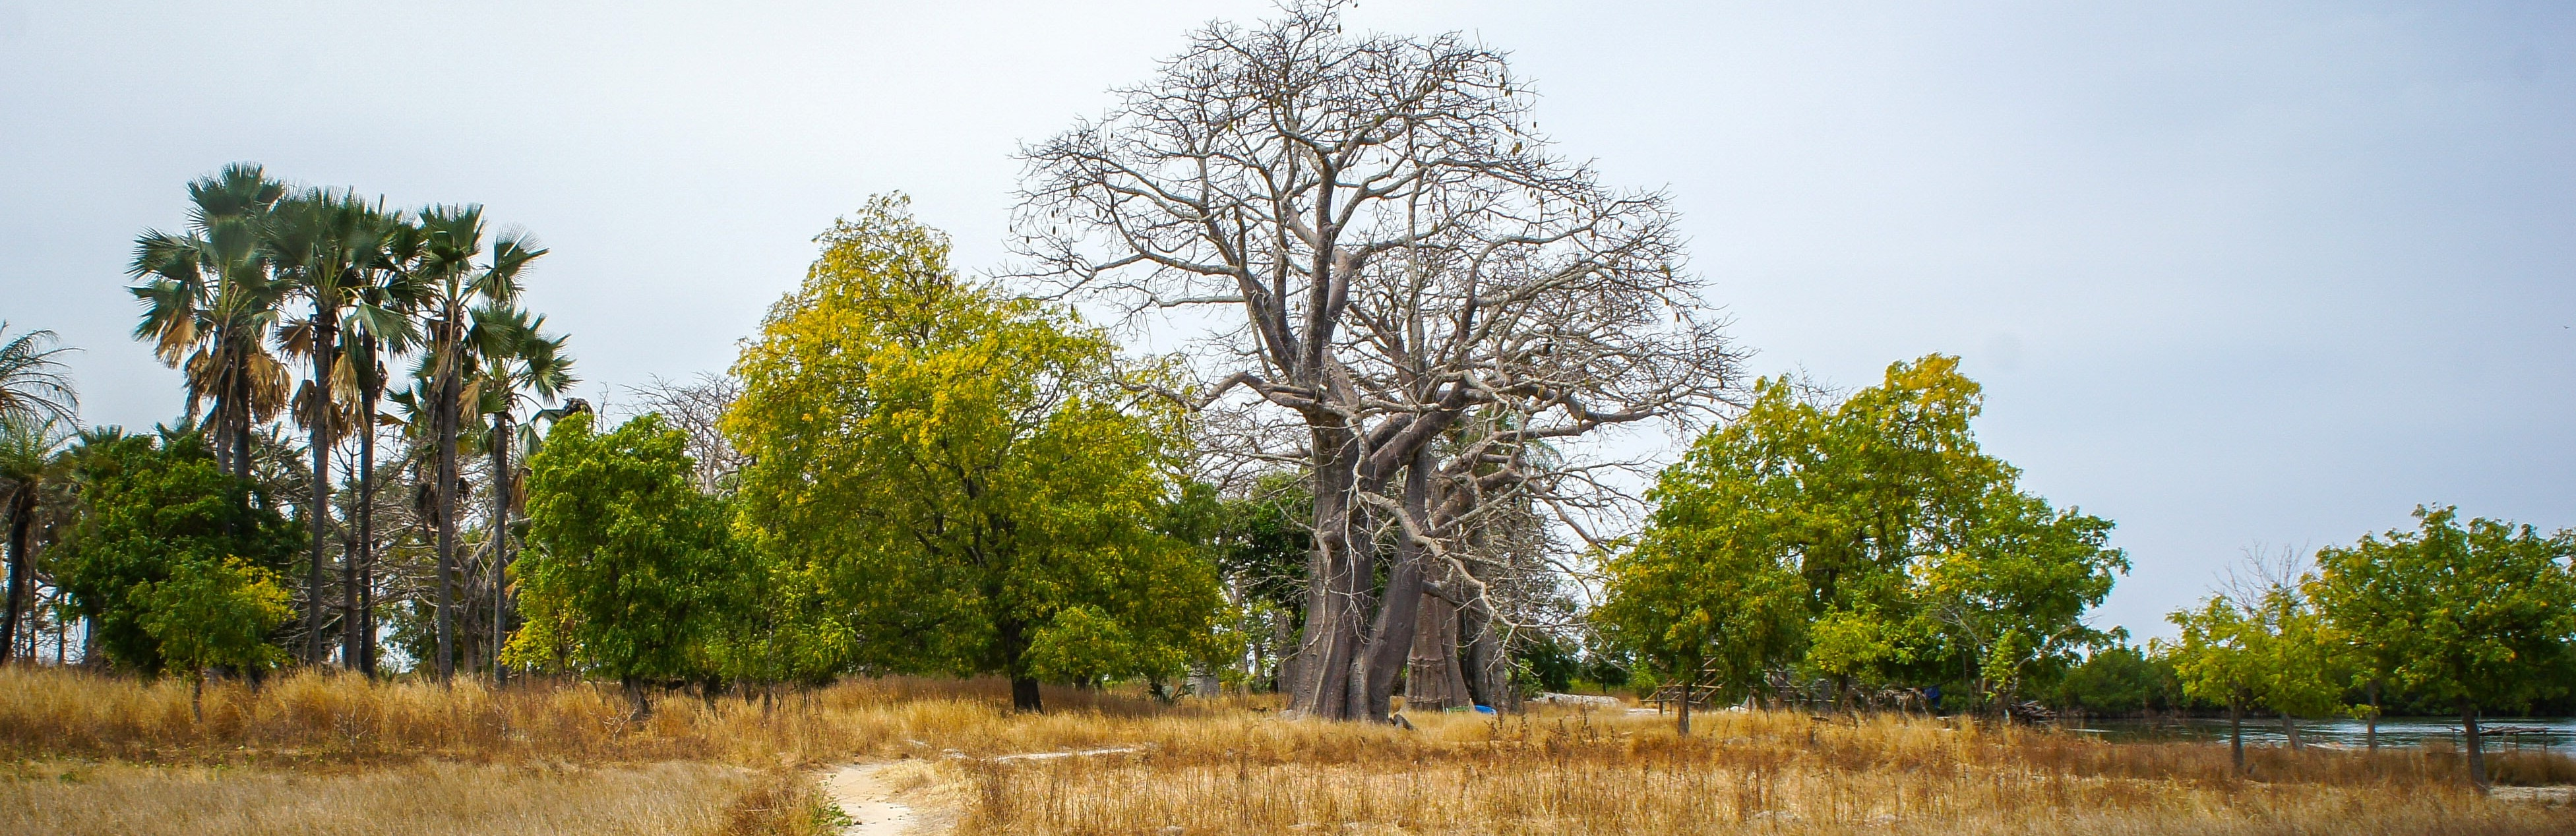 Trillion Trees: the Sahel and the Great Green Wall